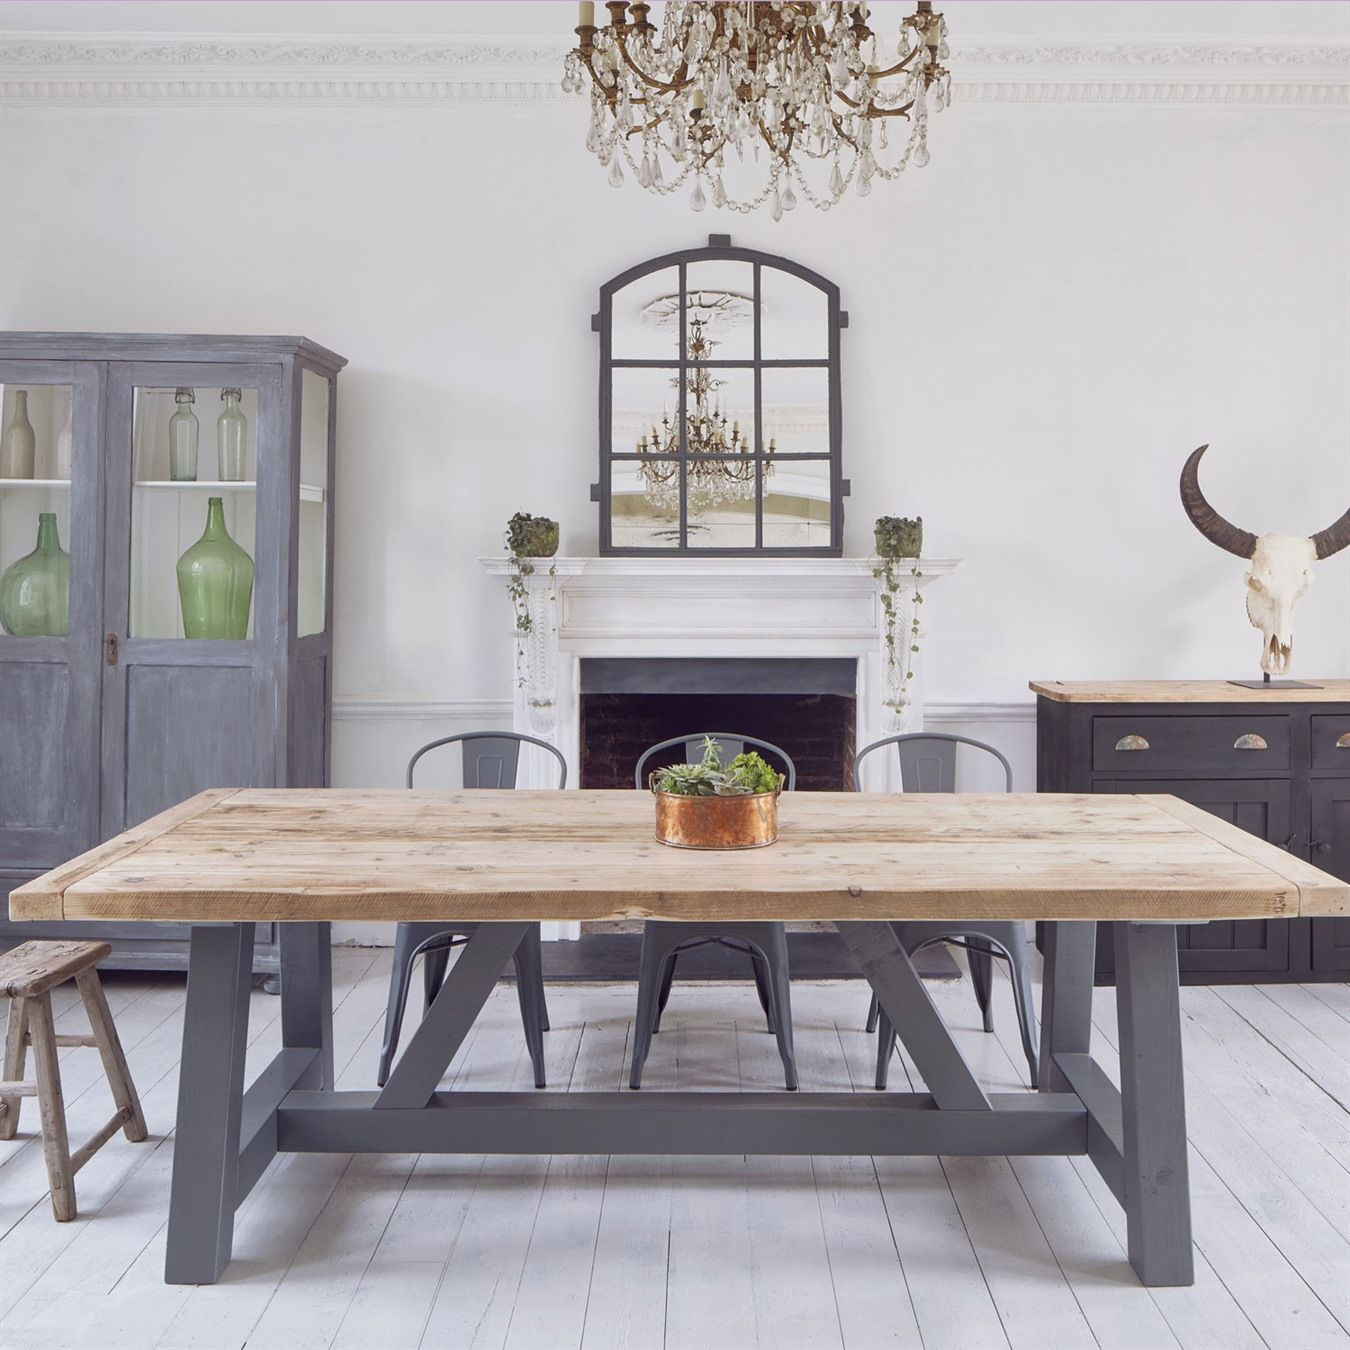 Table Ideas28 Captivating Kitchen Table Ideas Saleprice 48 Reclaimed Dining Table Farmhouse Dining Table